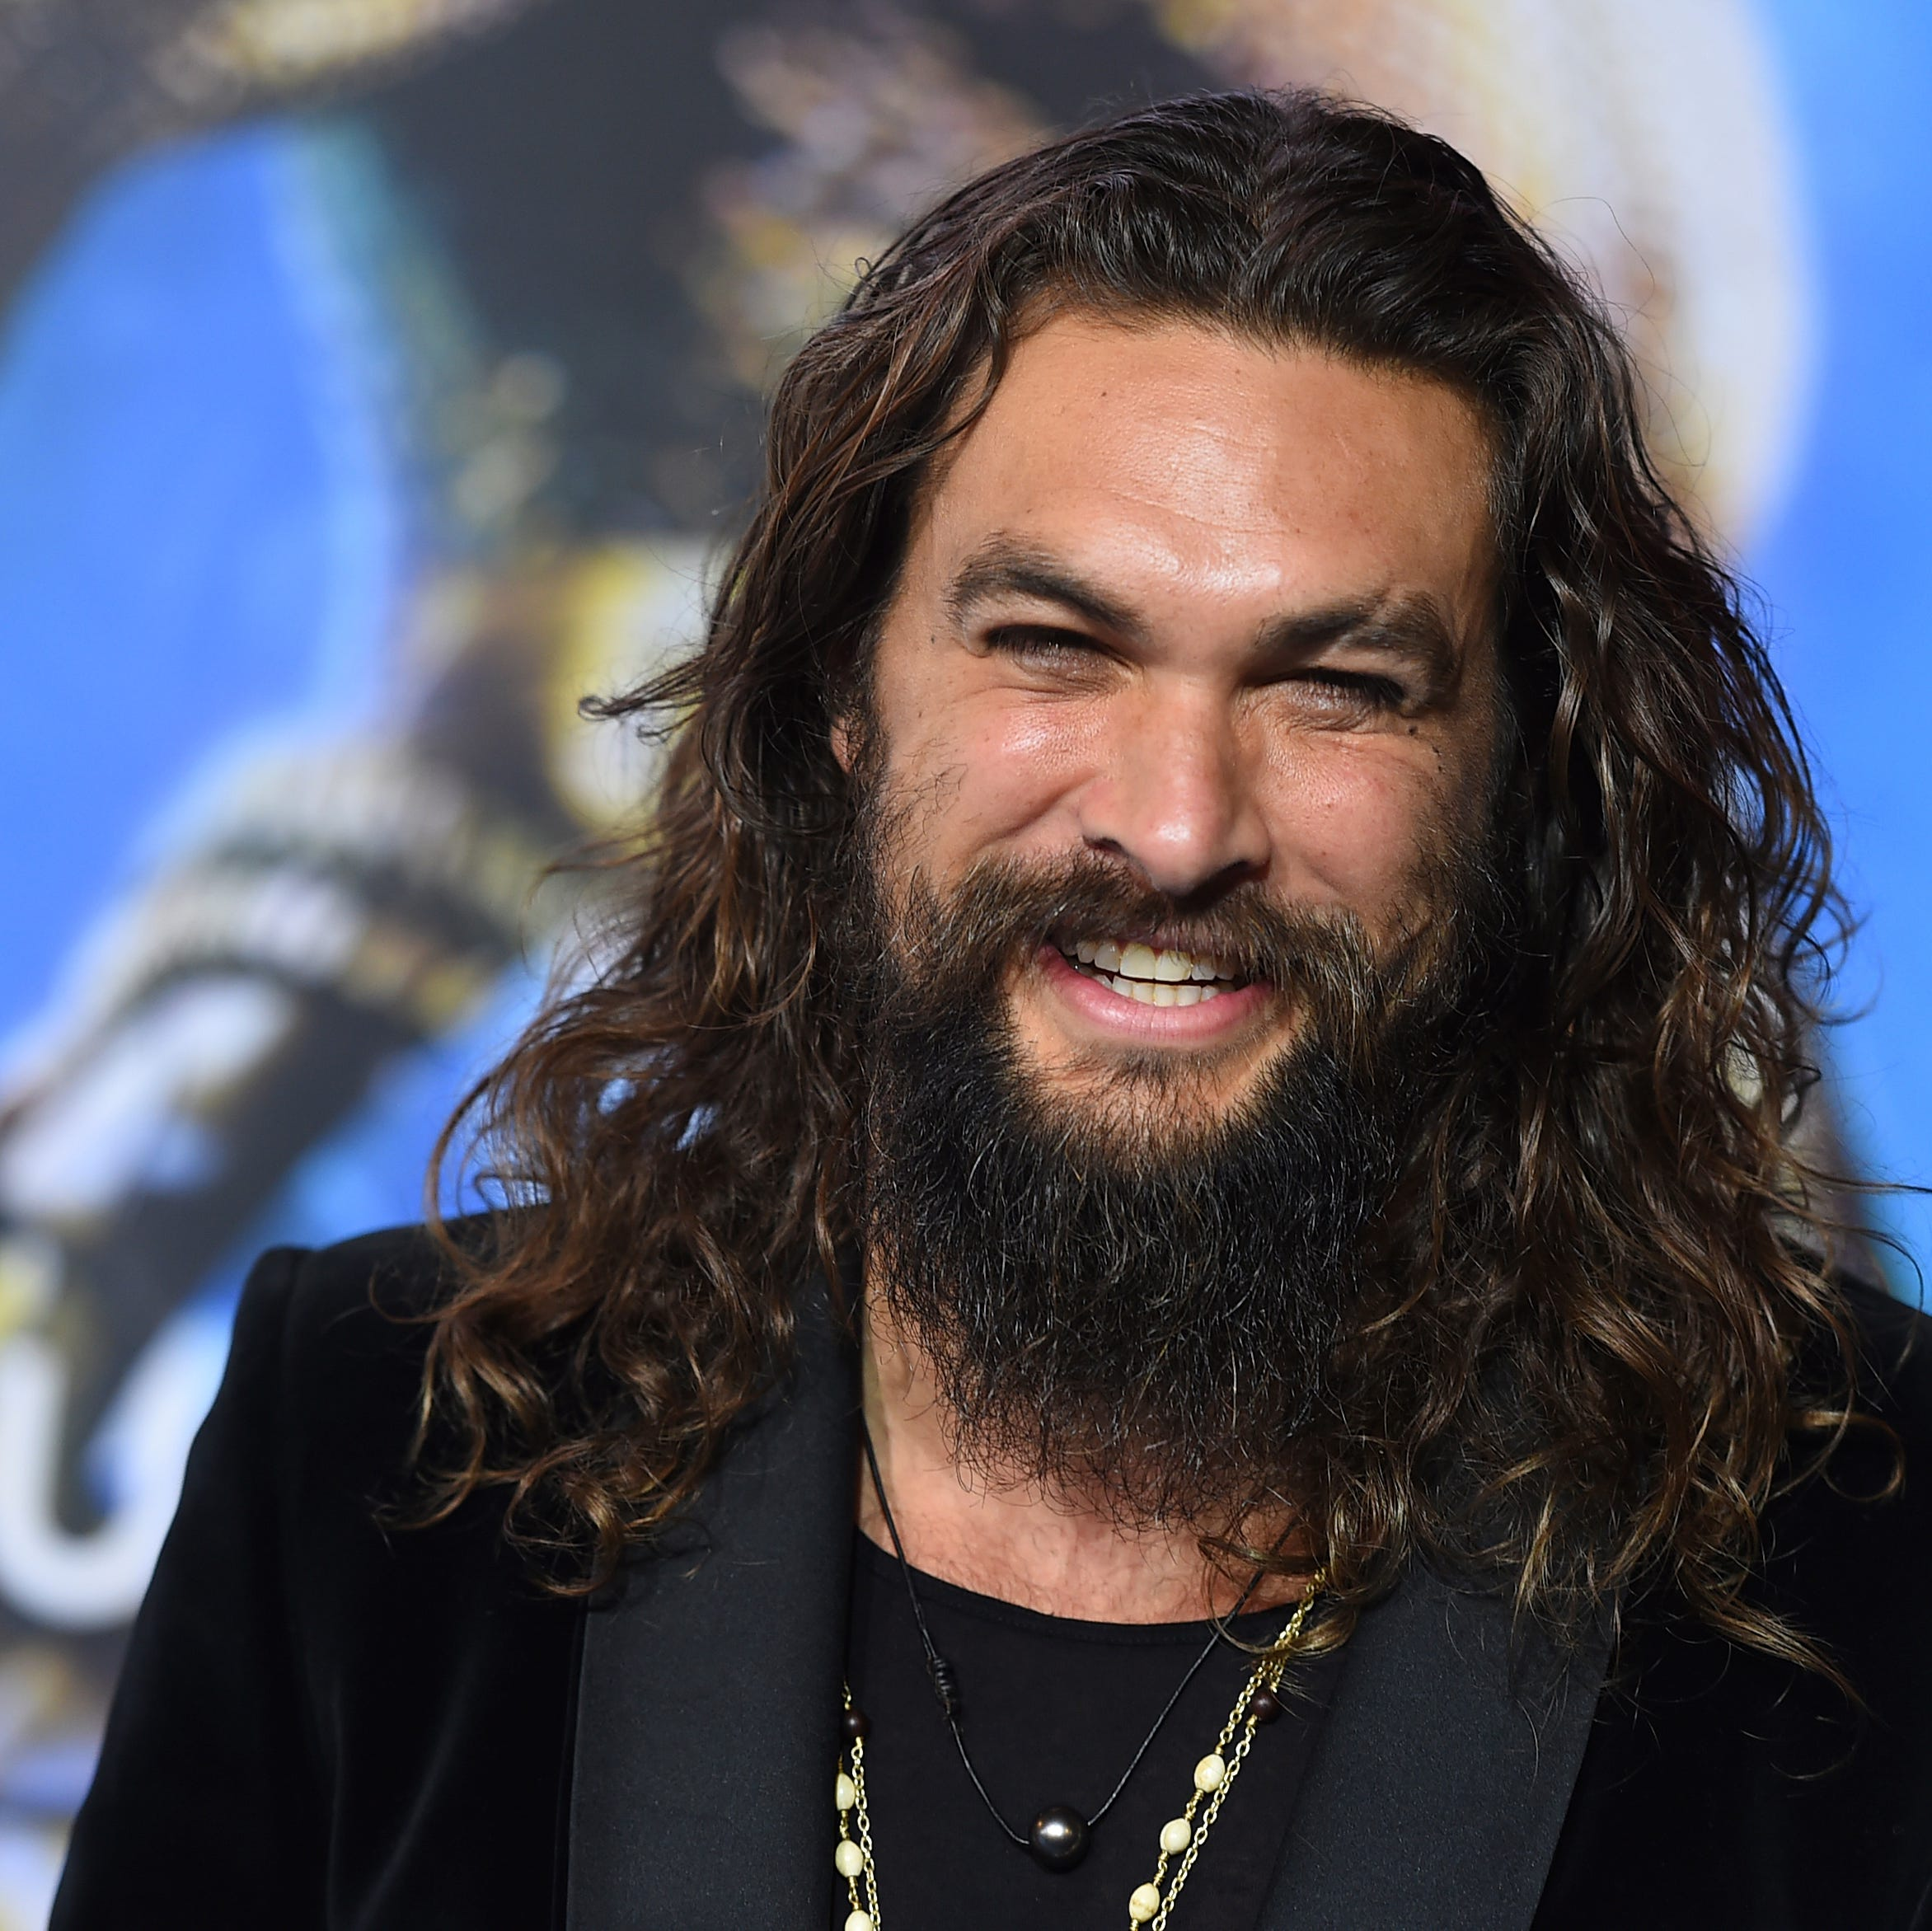 WATCH: 'Aquaman' star Jason Momoa shares endearing video of Des Moines visit